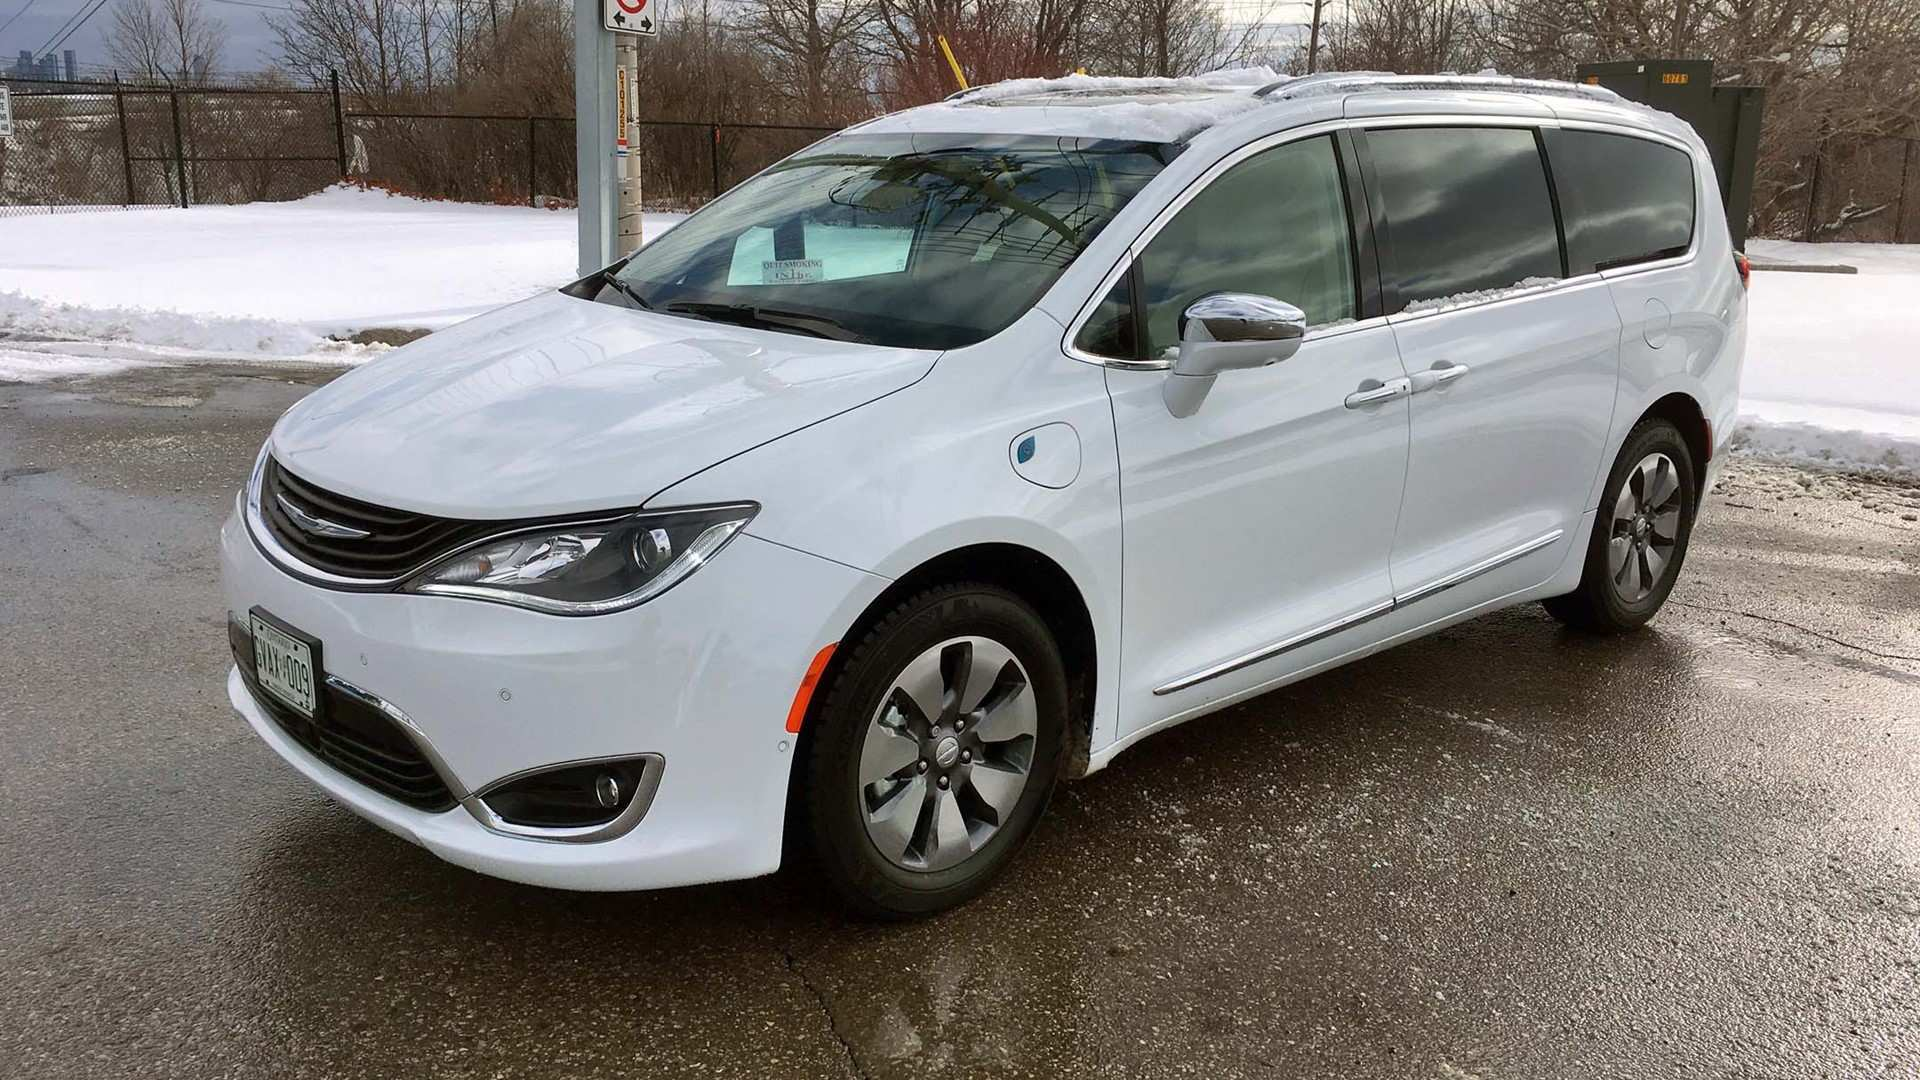 69 Best Review 2019 Chrysler Pacifica Review Performance by 2019 Chrysler Pacifica Review